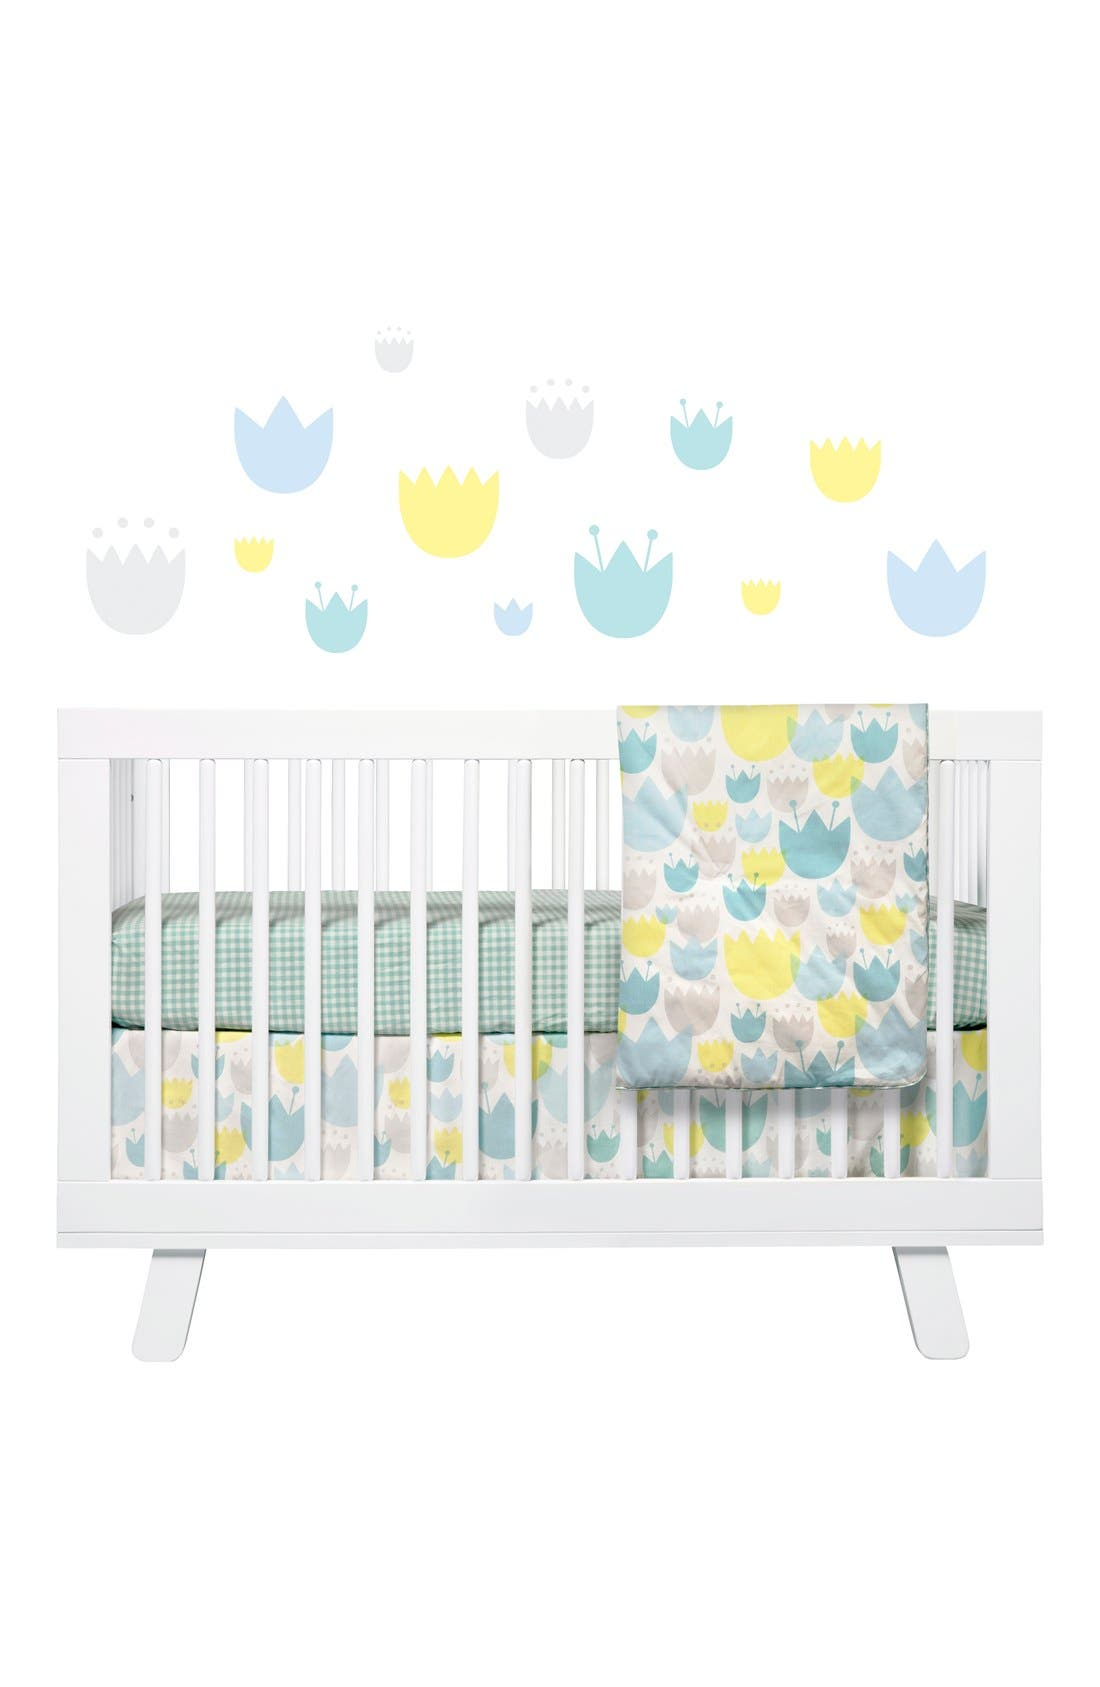 Alternate Image 1 Selected - babyletto 'Garden' Crib Sheet, Crib Skirt, Changing Pad Cover, Play Blanket & Wall Decals